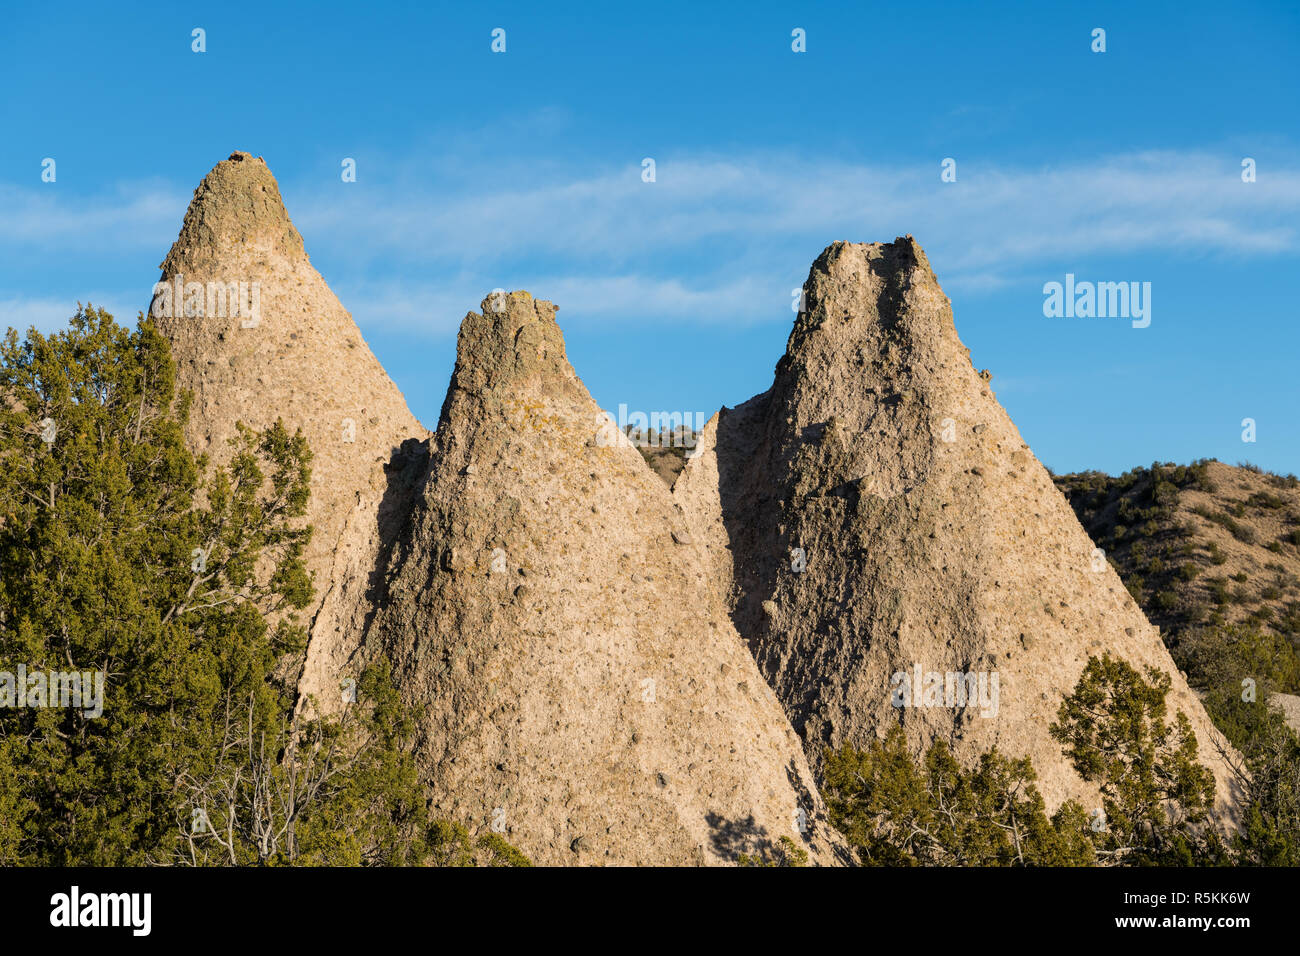 A group of three sharply pointed, cone-shaped rock formations at Kasha-Katuwe Tent Rocks National Monument, New Mexico - Stock Image